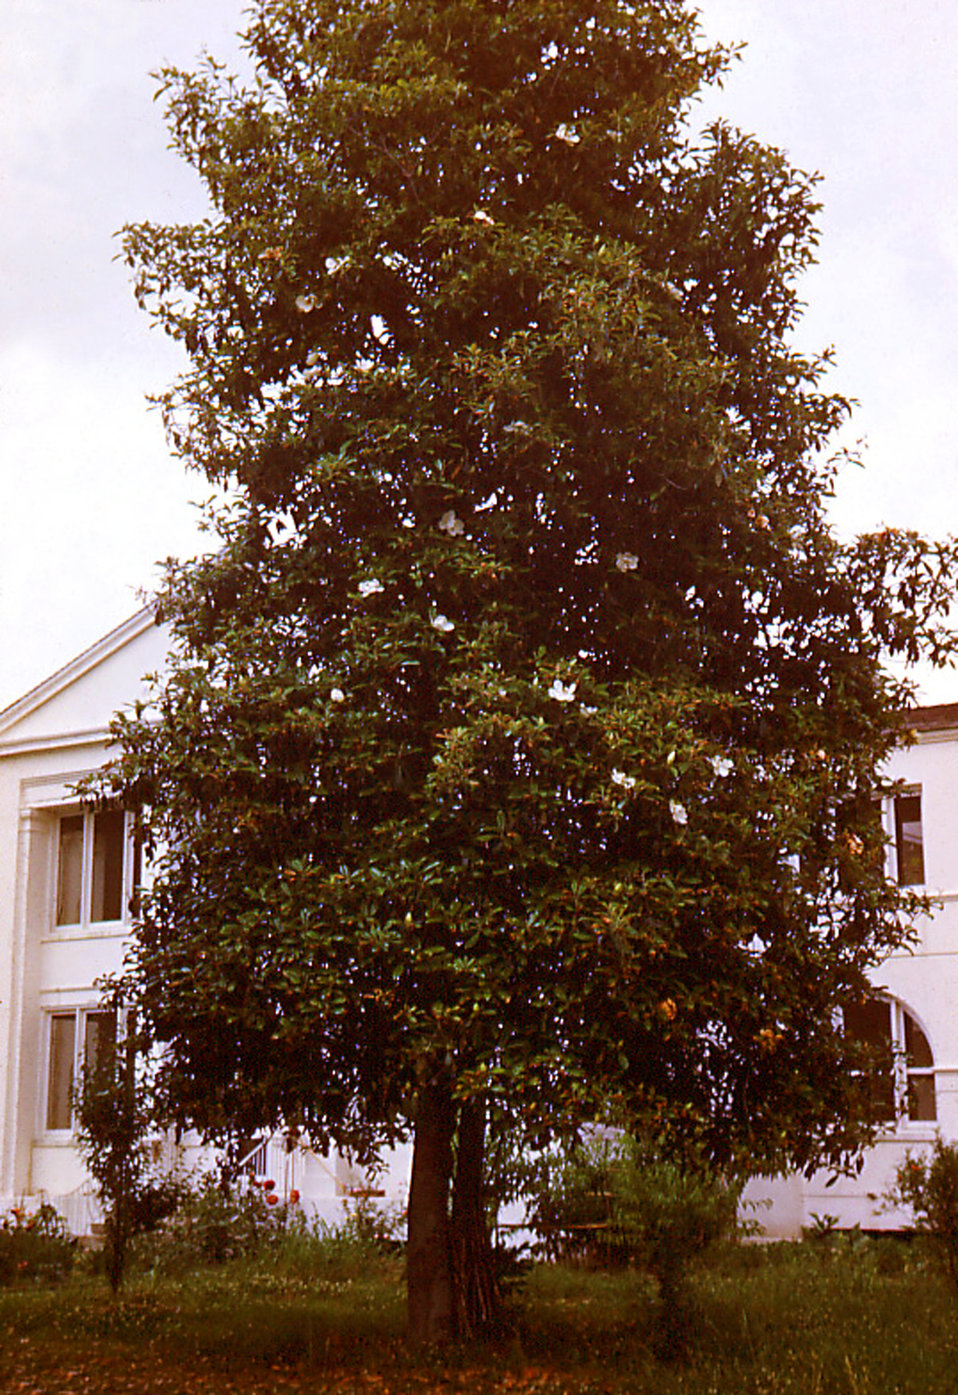 This historic image depicted one of the tall Magnolia trees that had been growing on the grounds of the Carville, Louisiana Leprosarium. The